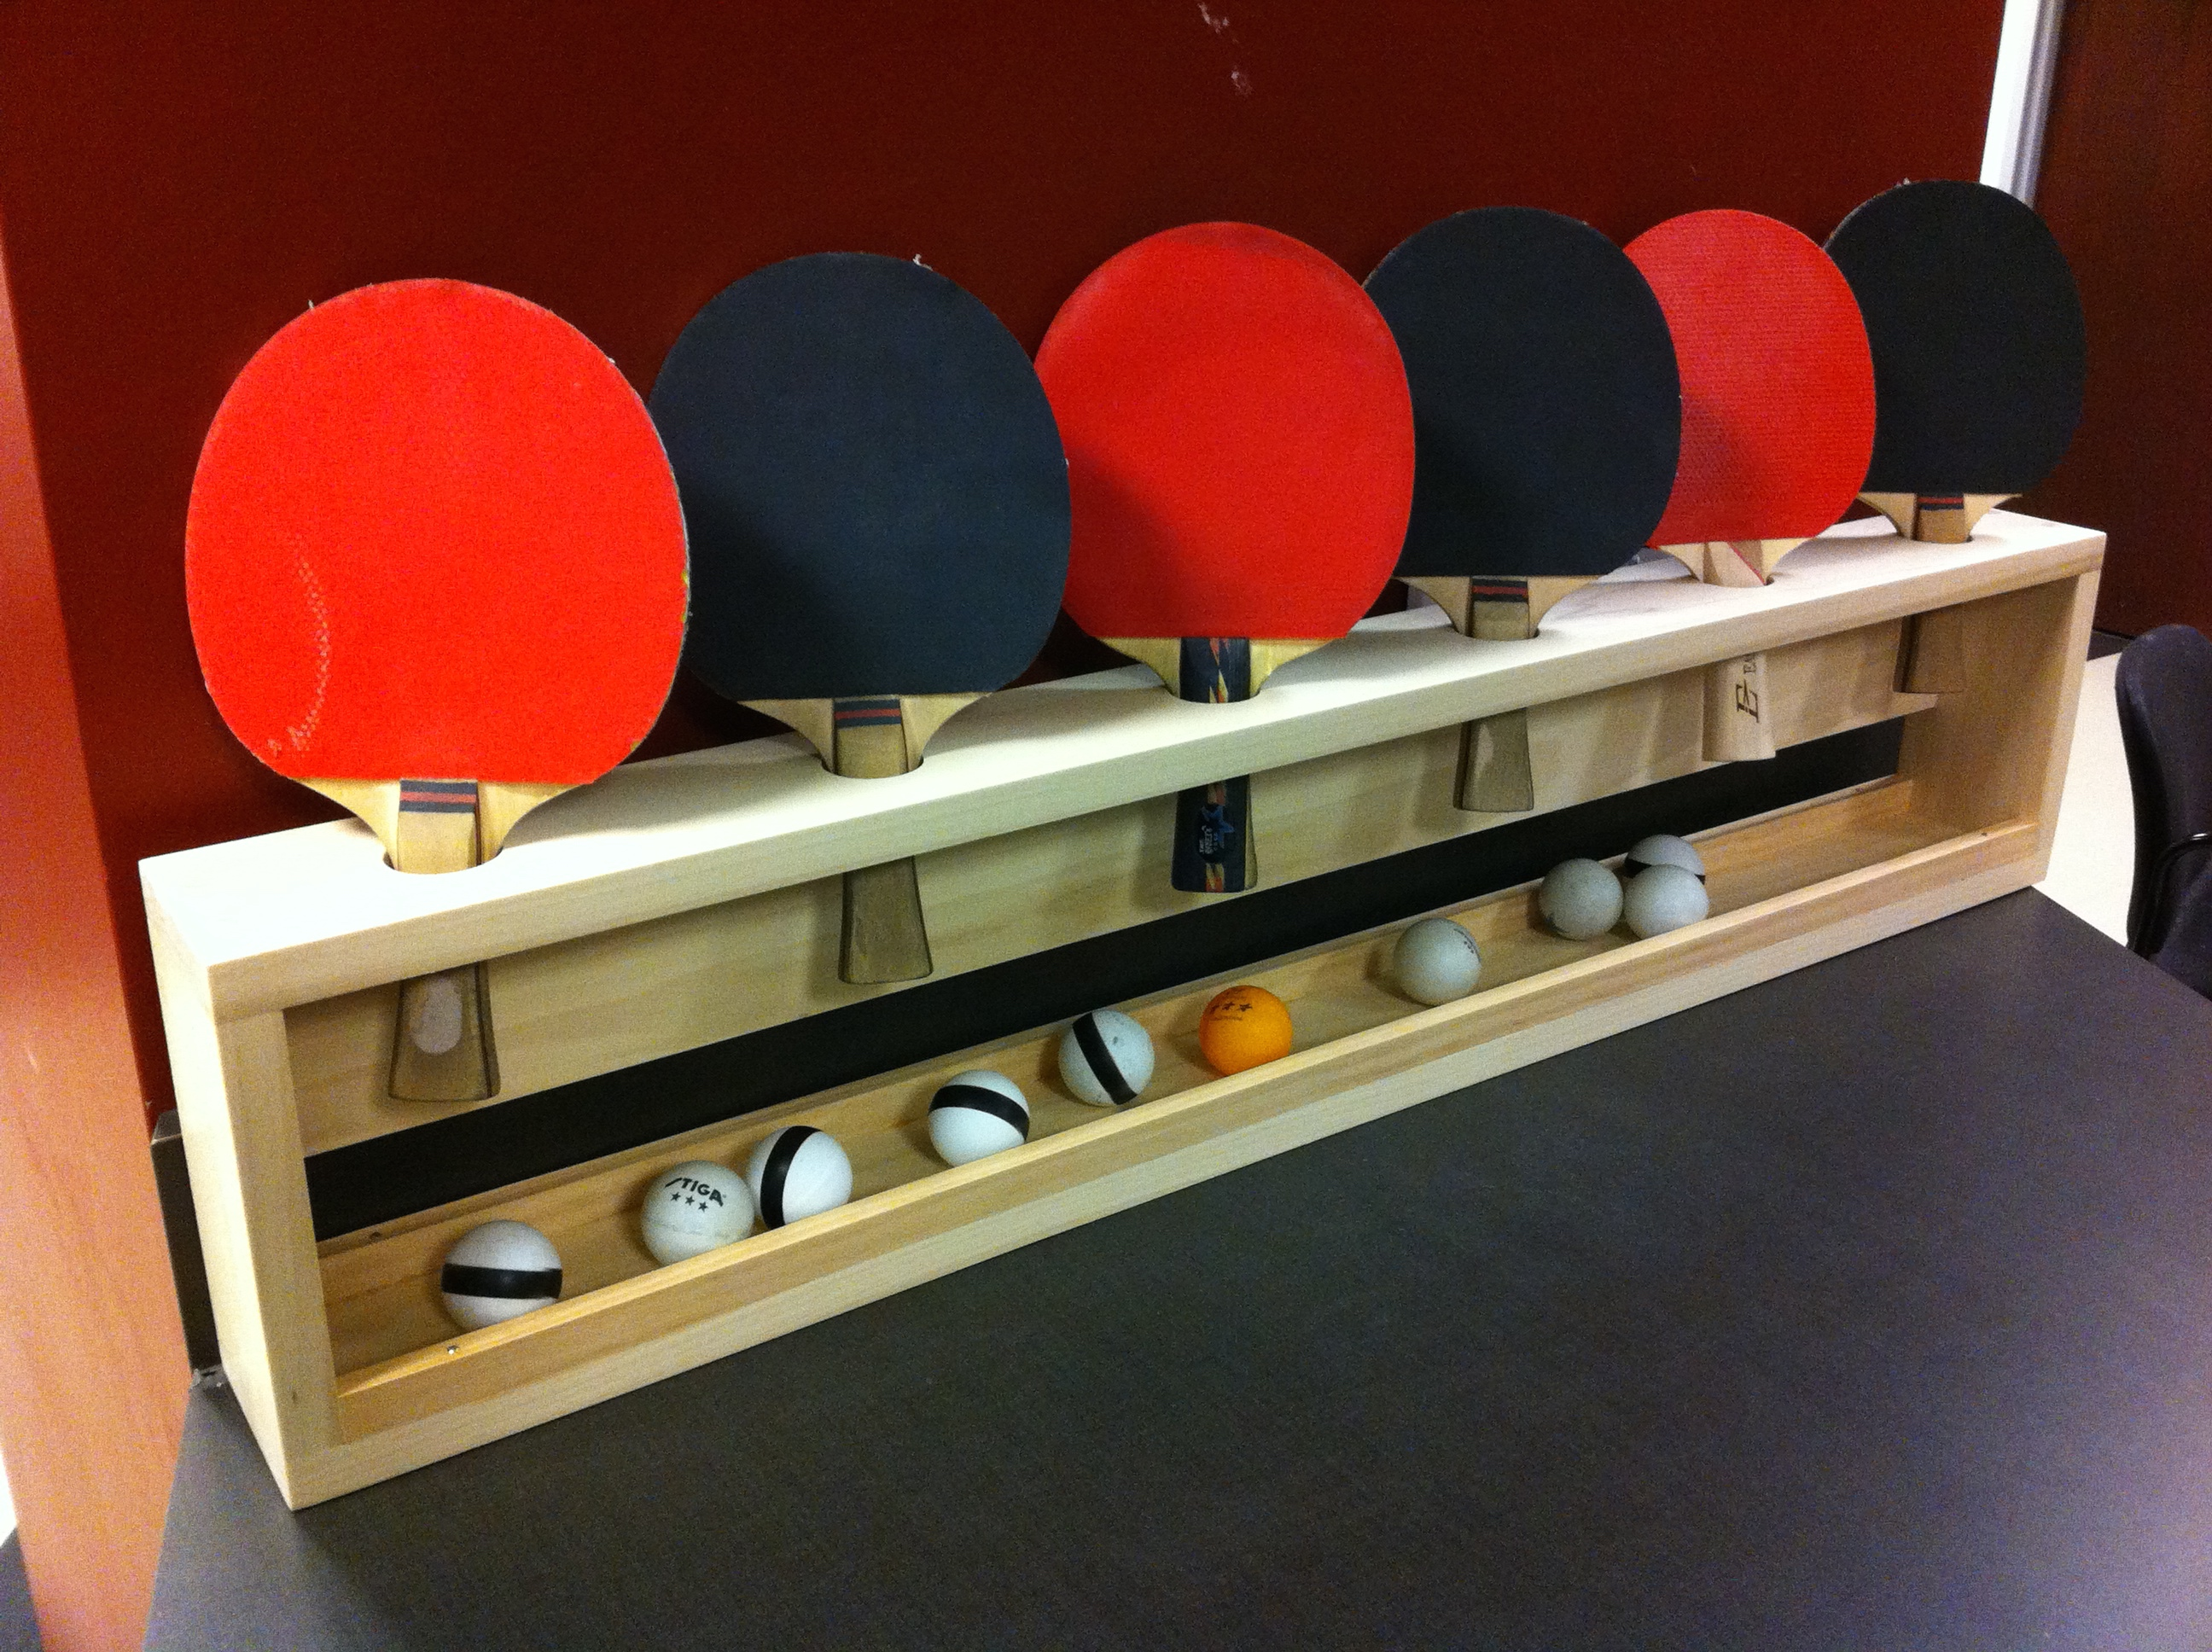 Office ping pong paddle rack ryan j turek - How much space for a ping pong table ...